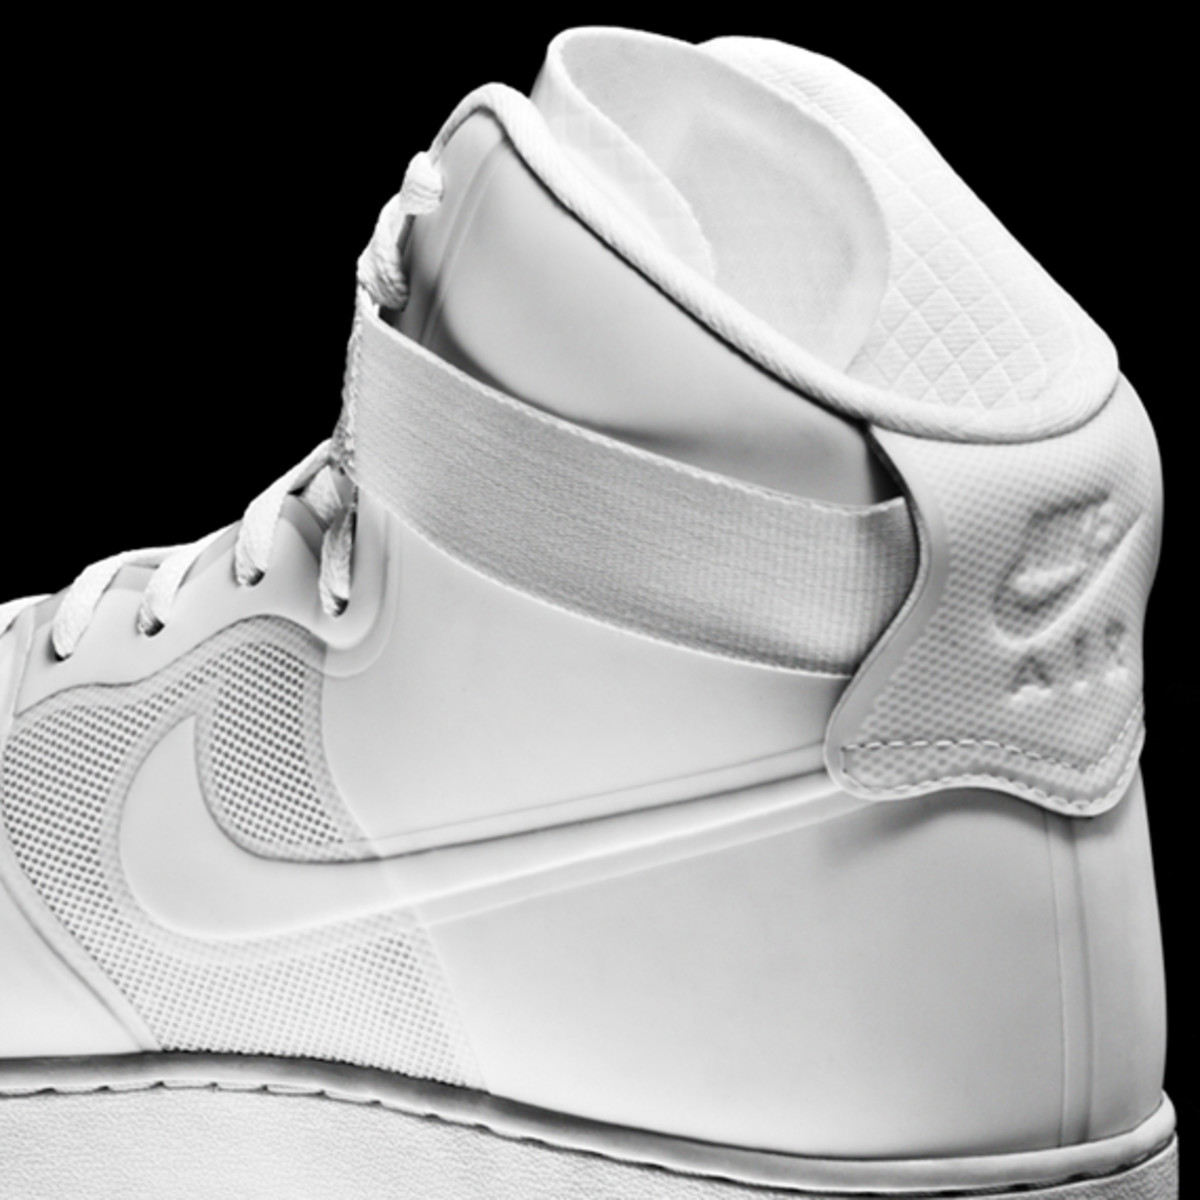 nike-sportswear-air-force-one-hyperfuse-04